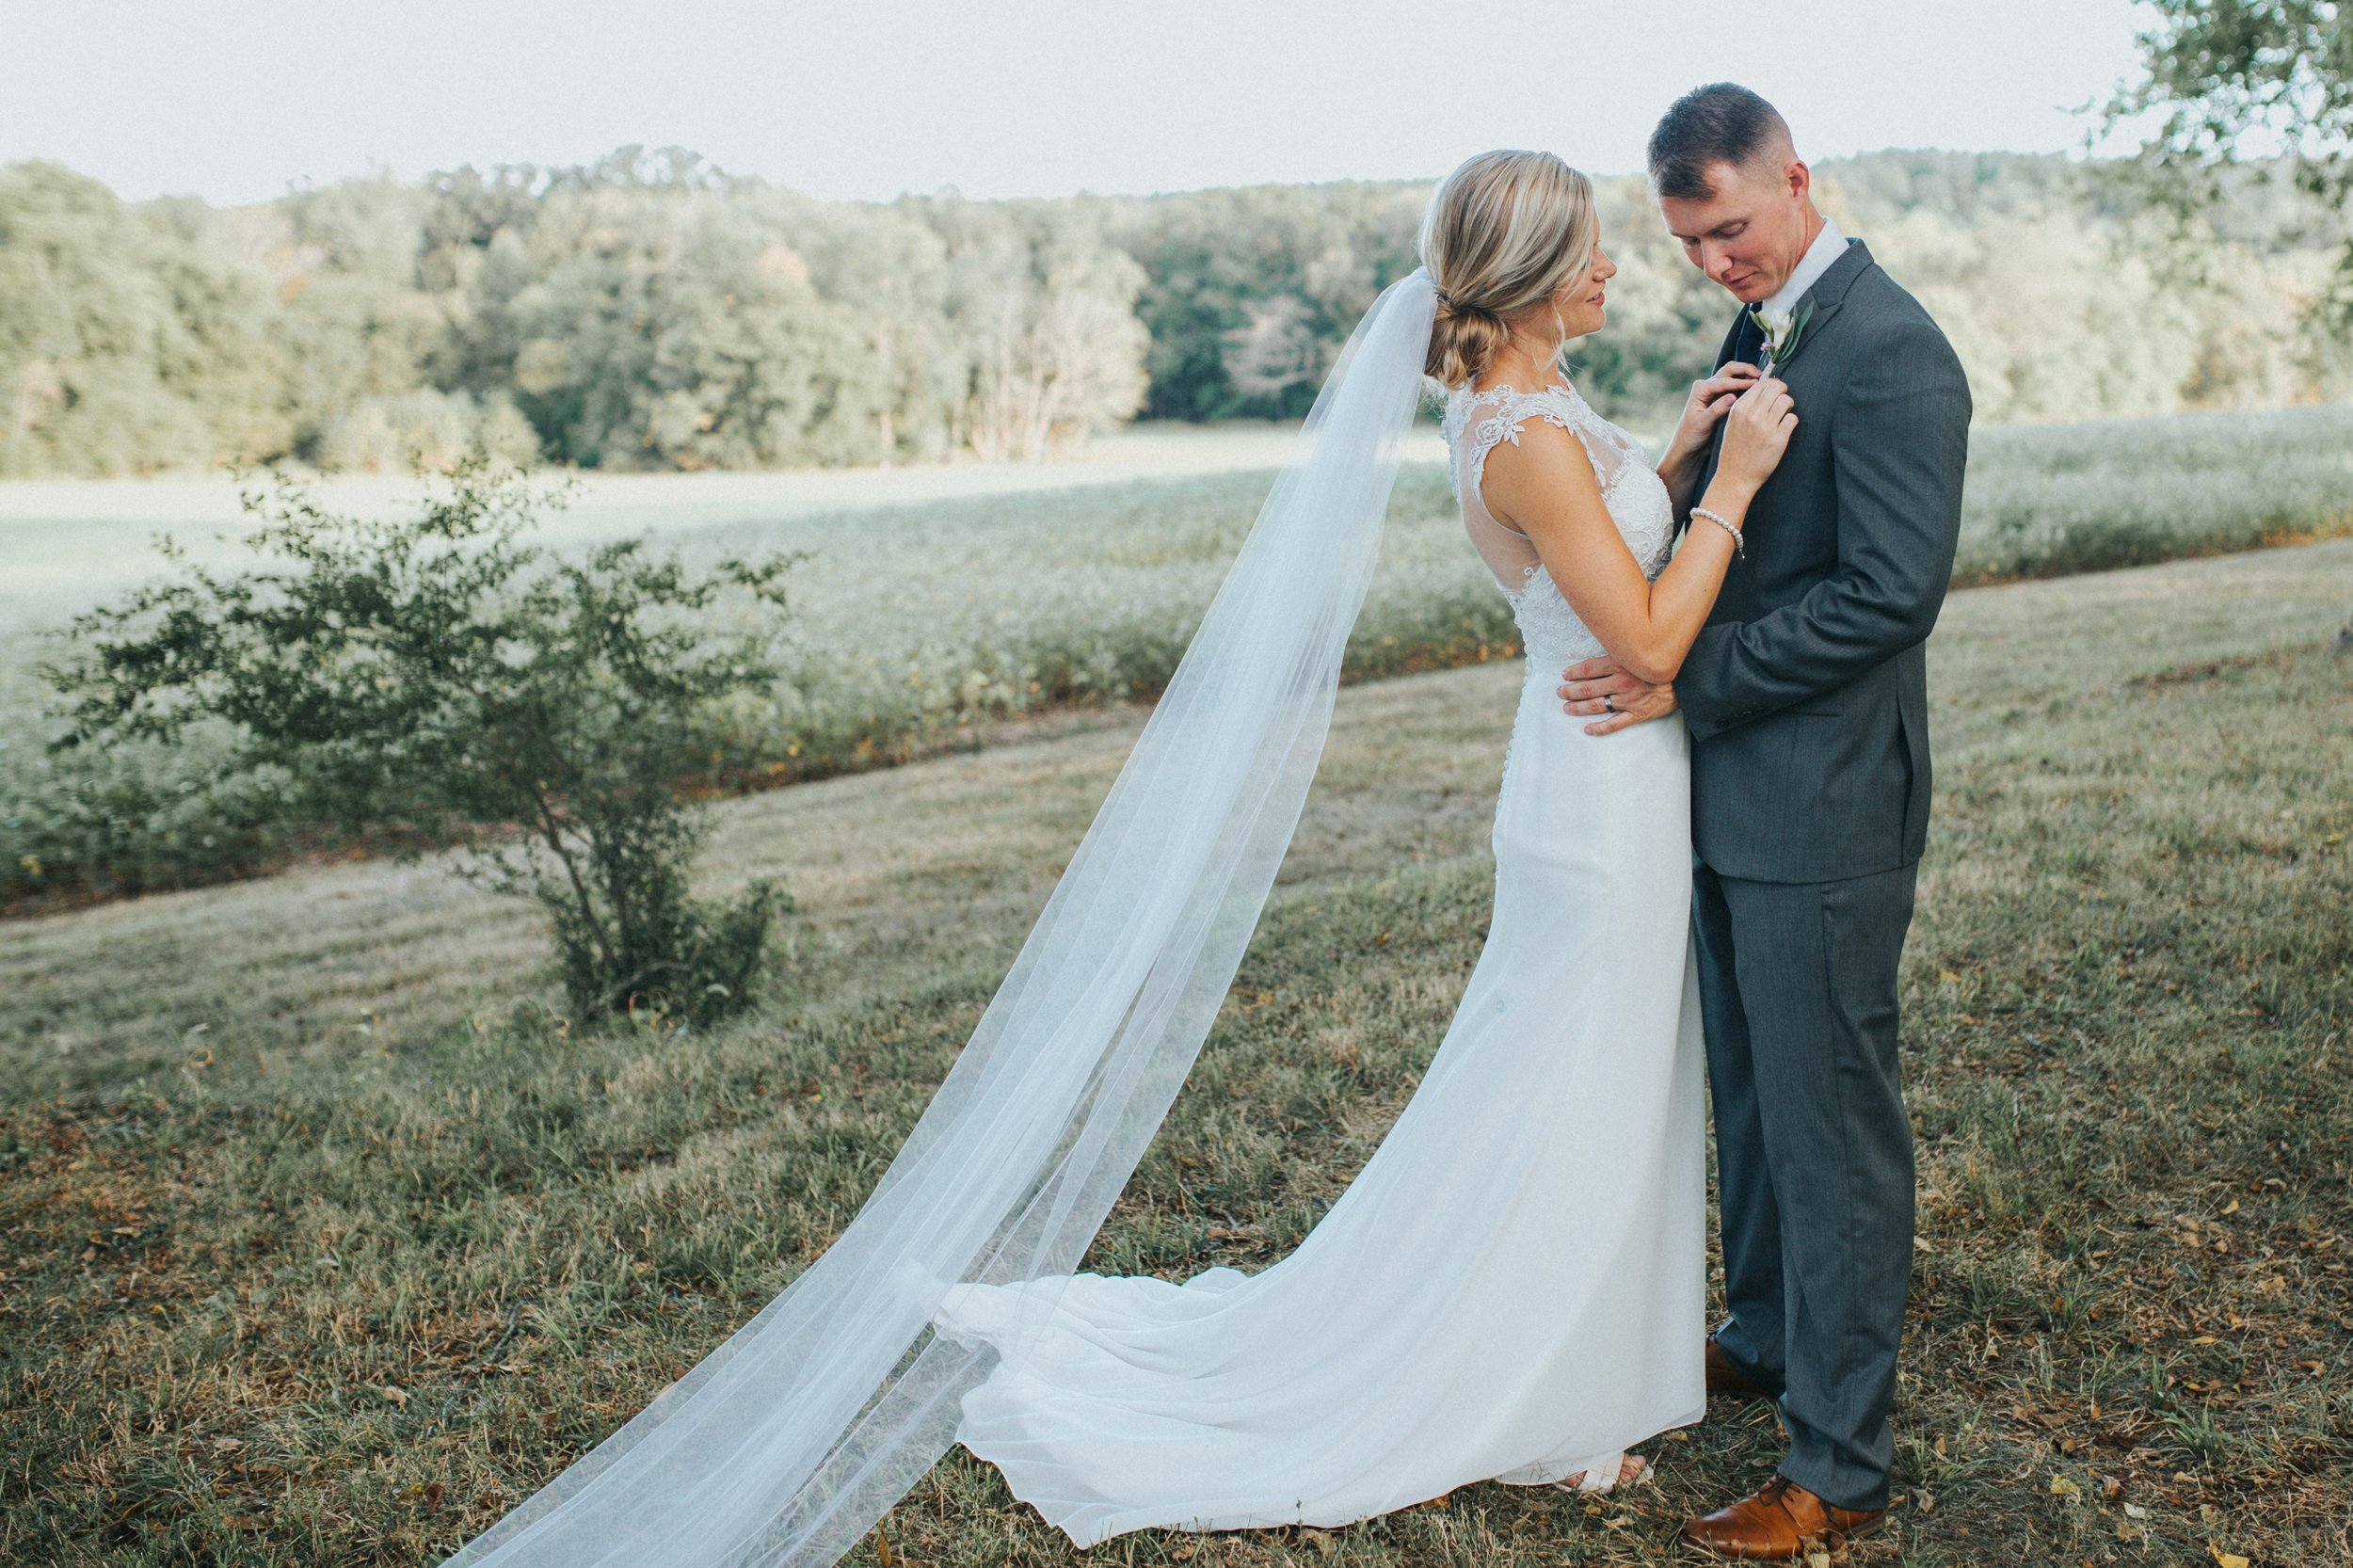 Virginia wedding photographer, Charlottesville wedding photographer, the hunt at Selma wedding, amelia virginia wedding photographer_0211.jpg